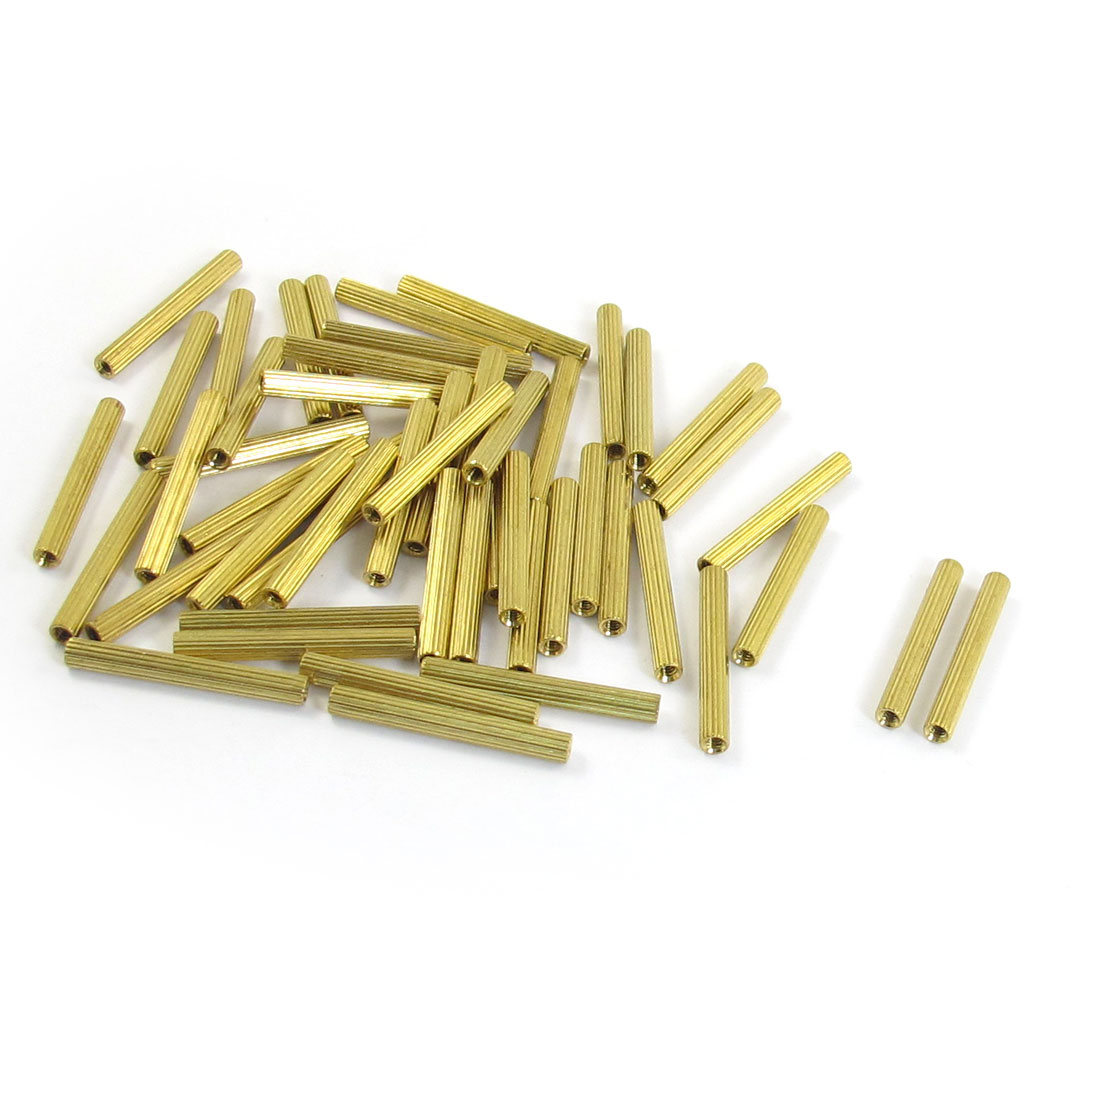 M2x25mm Cylinder Shaped Female Threaded Brass Standoff Spacer 50Pcs